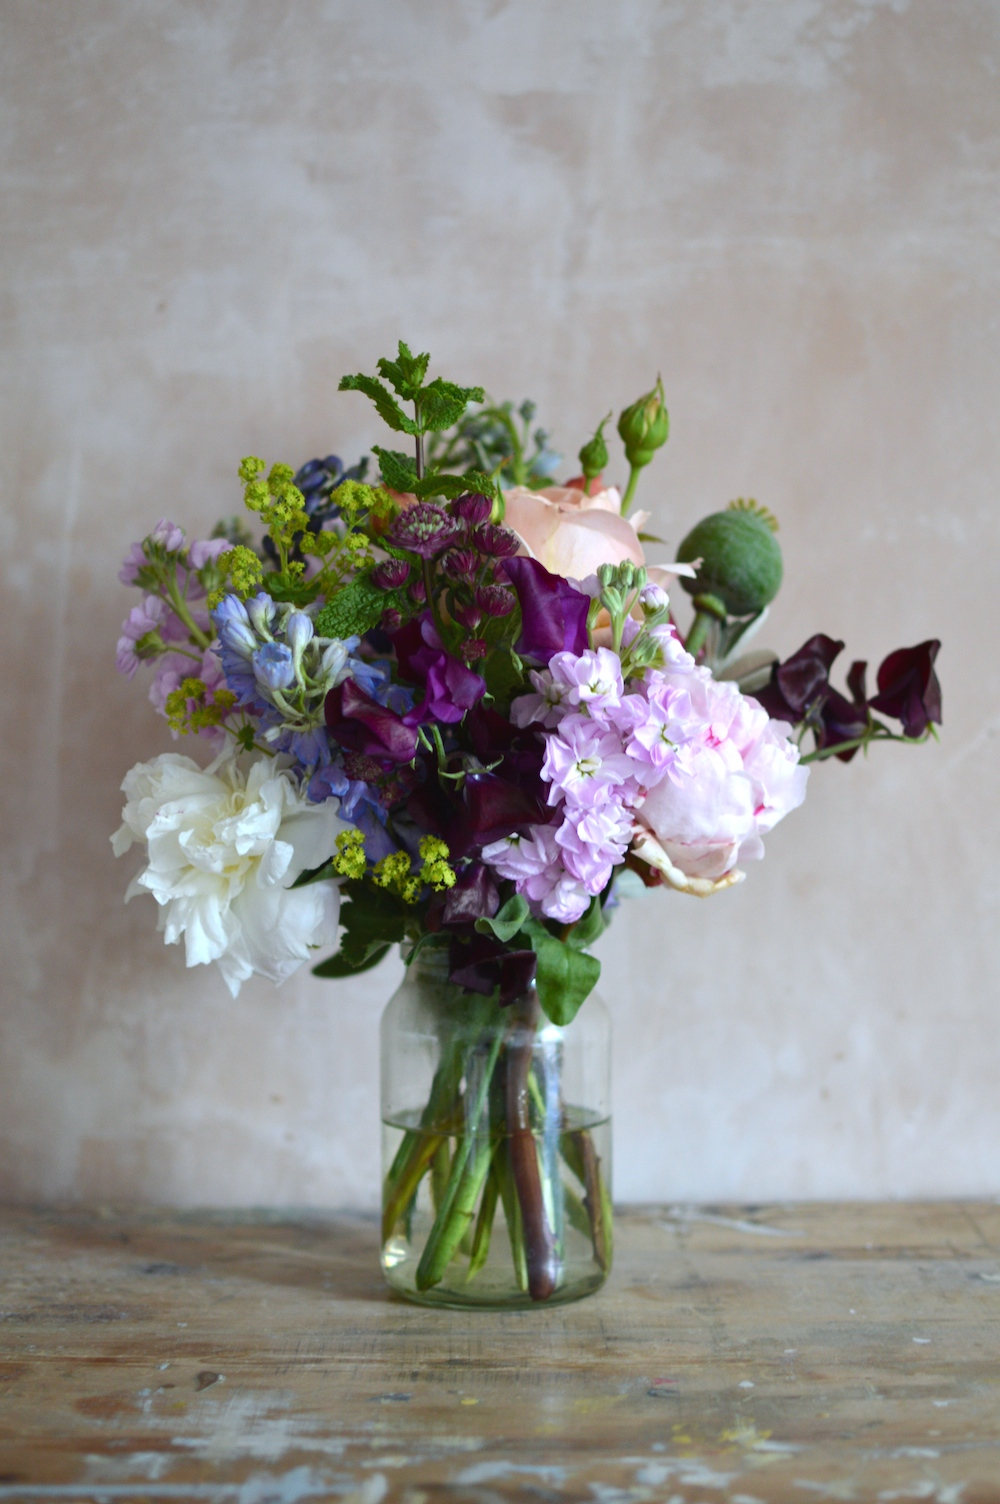 The Flower Appreciation Society Sprunting A Uk Lifestyle Blog